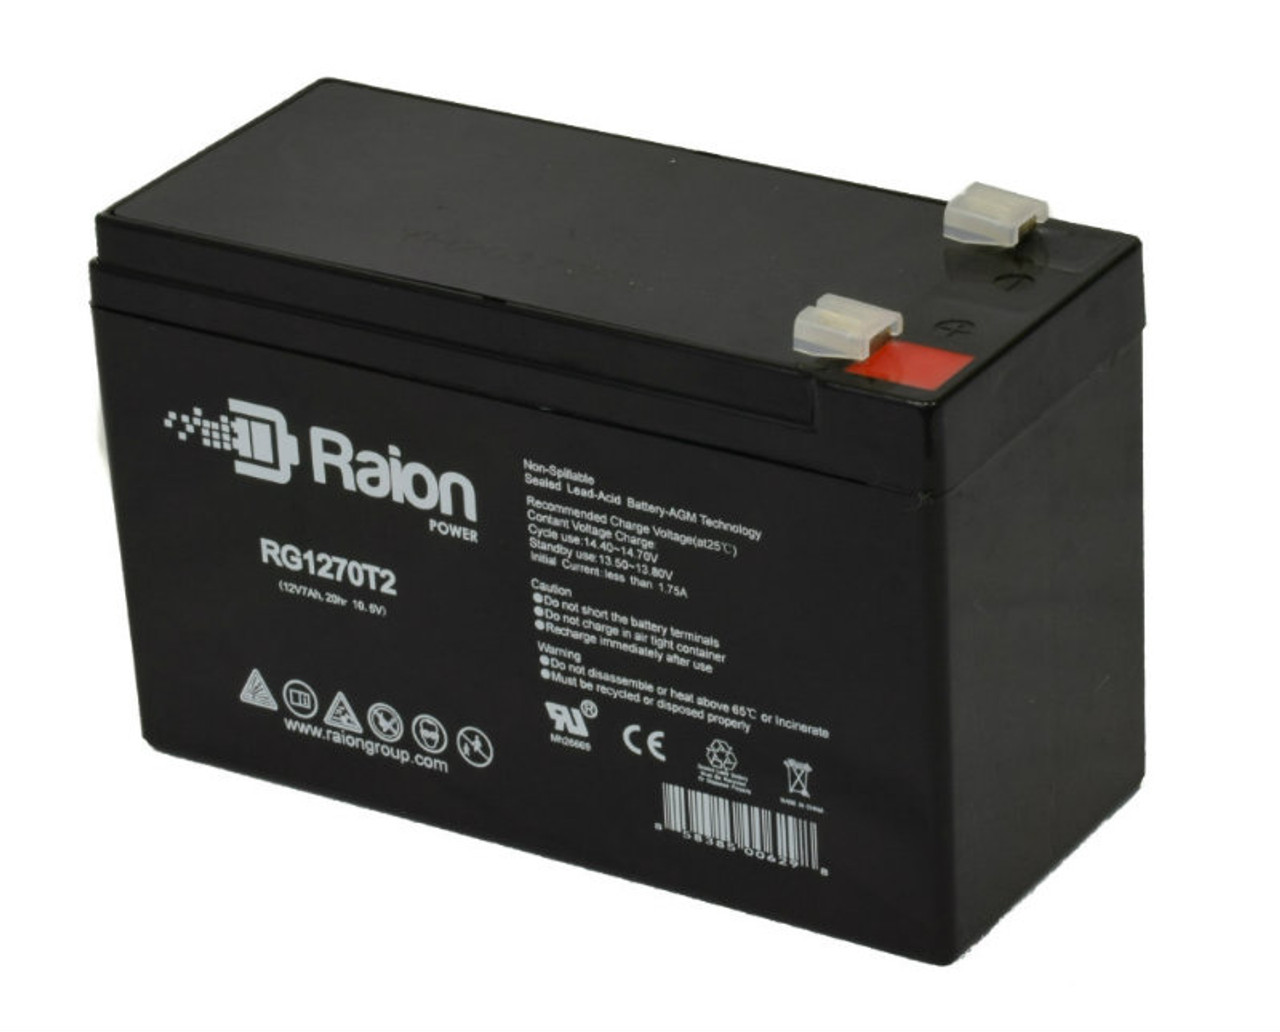 Raion Power RG1270T1 Replacement Battery for Long Way LW-6FM7.6